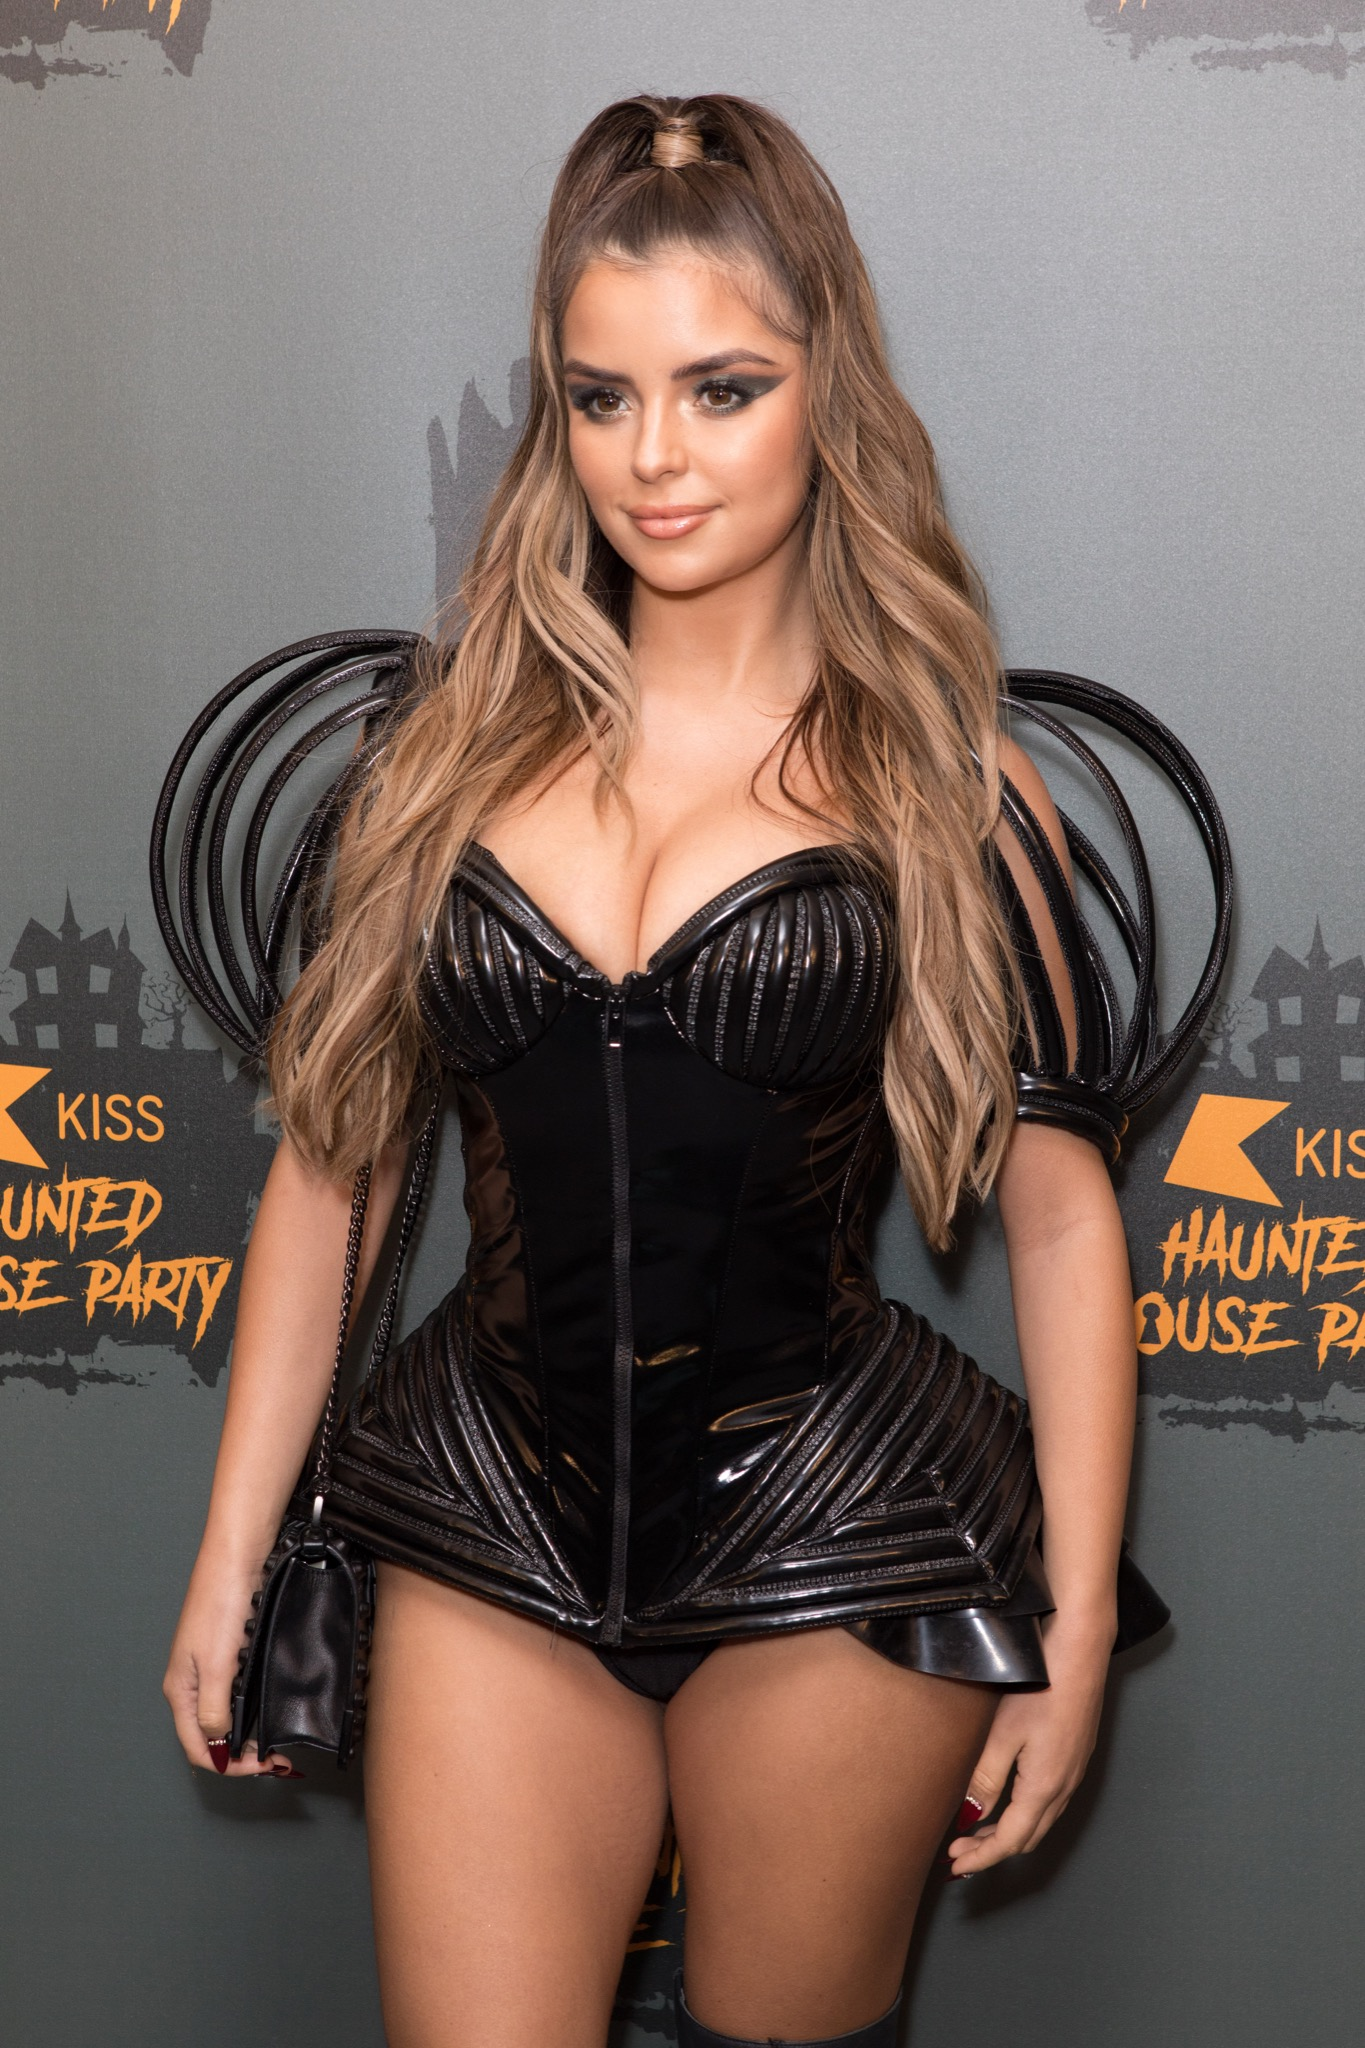 Guest attend at radio station's annual Halloween themed gig/party Featuring: Demi Rose Mawby Where: London, United Kingdom When: 26 Oct 2018 Credit: Phil Lewis/WENN.com